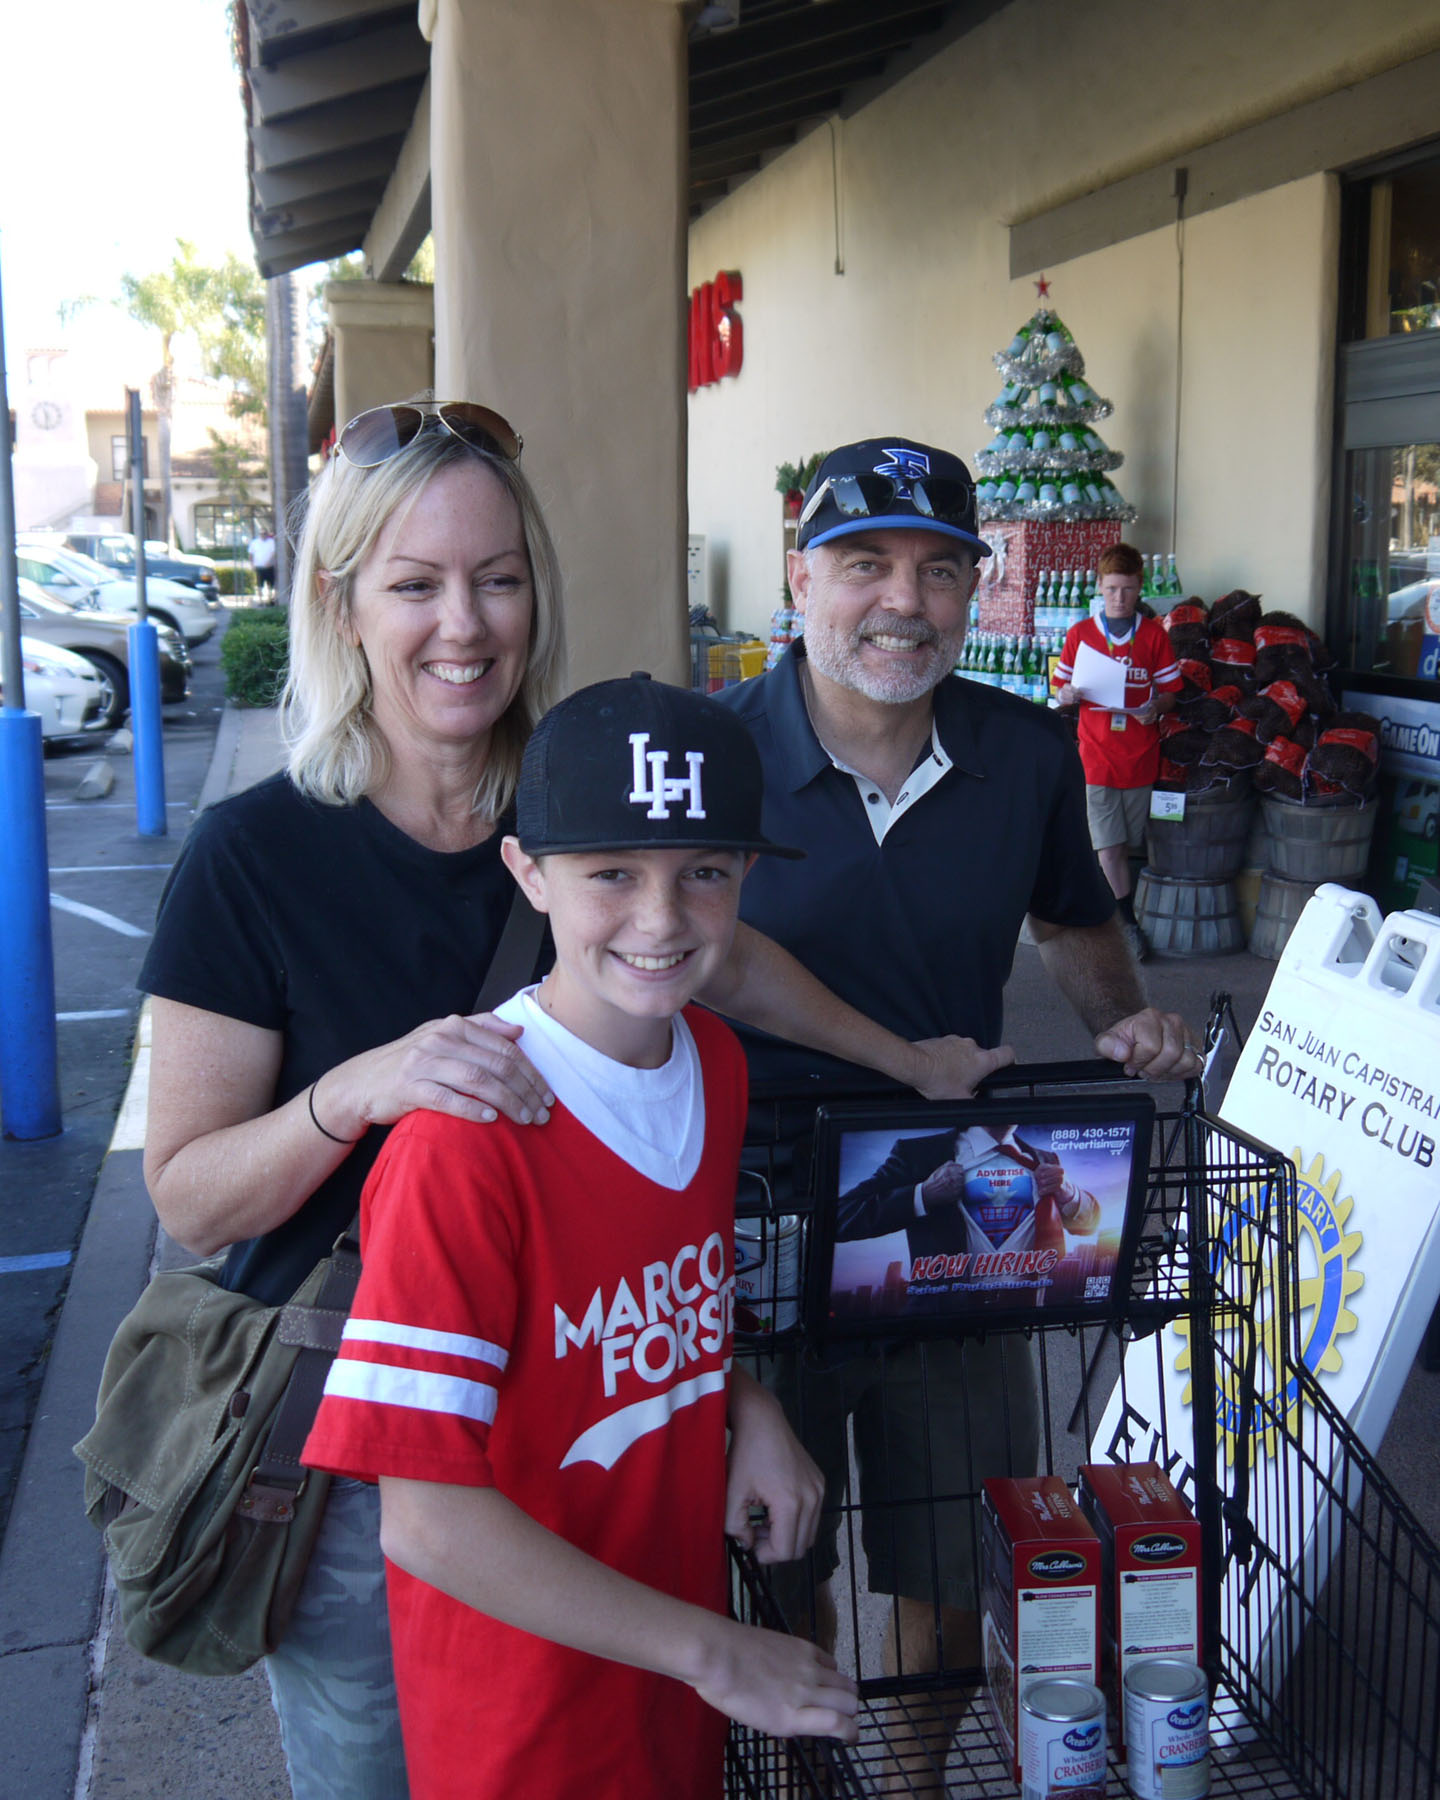 Marco Forster PAL volunteer Marcus Varner and his parents Tracy and Kevin collect food donations for SJC Rotary Club. Photo: John Caldwell